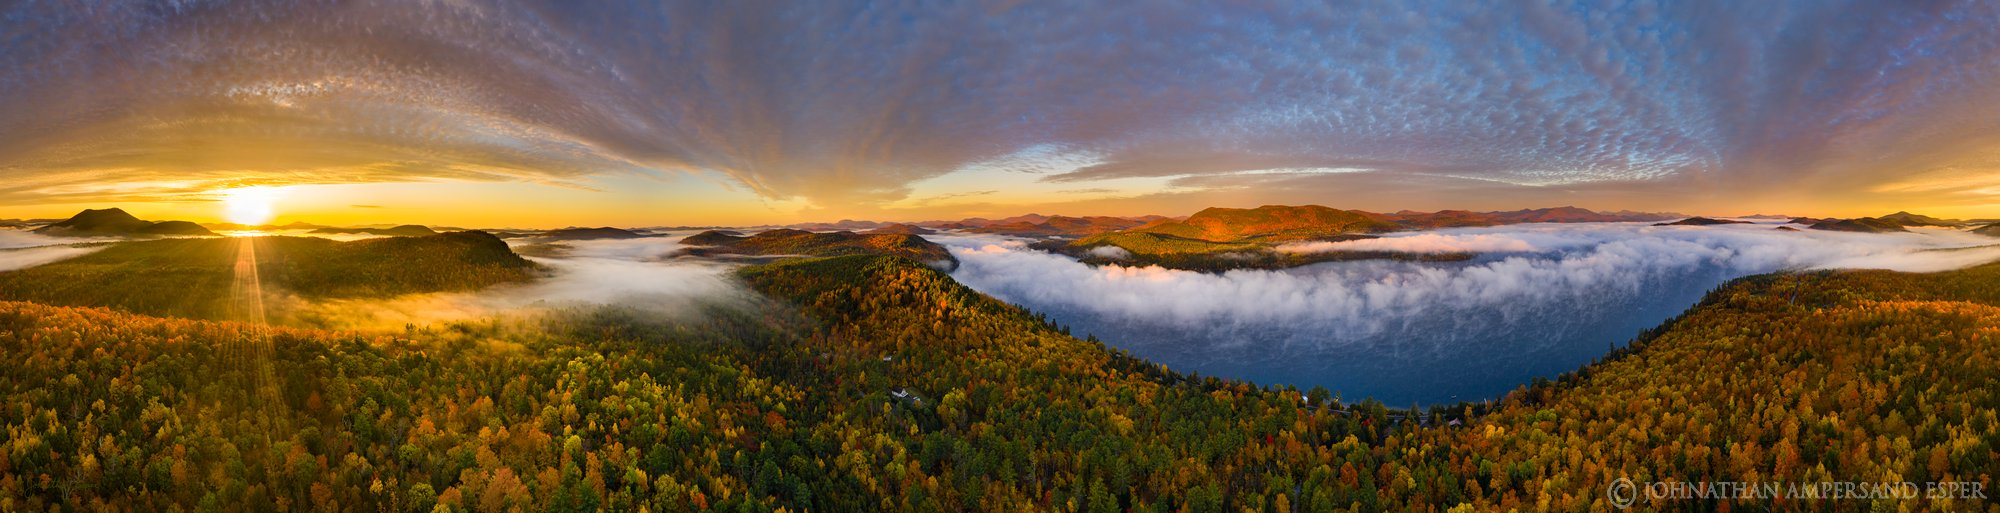 Schroon Lake,Browns house,fall,sunrise,2019,drone,aerial,panorama,drone panorama,360 degree,360 panorama,town of Adirondack, photo